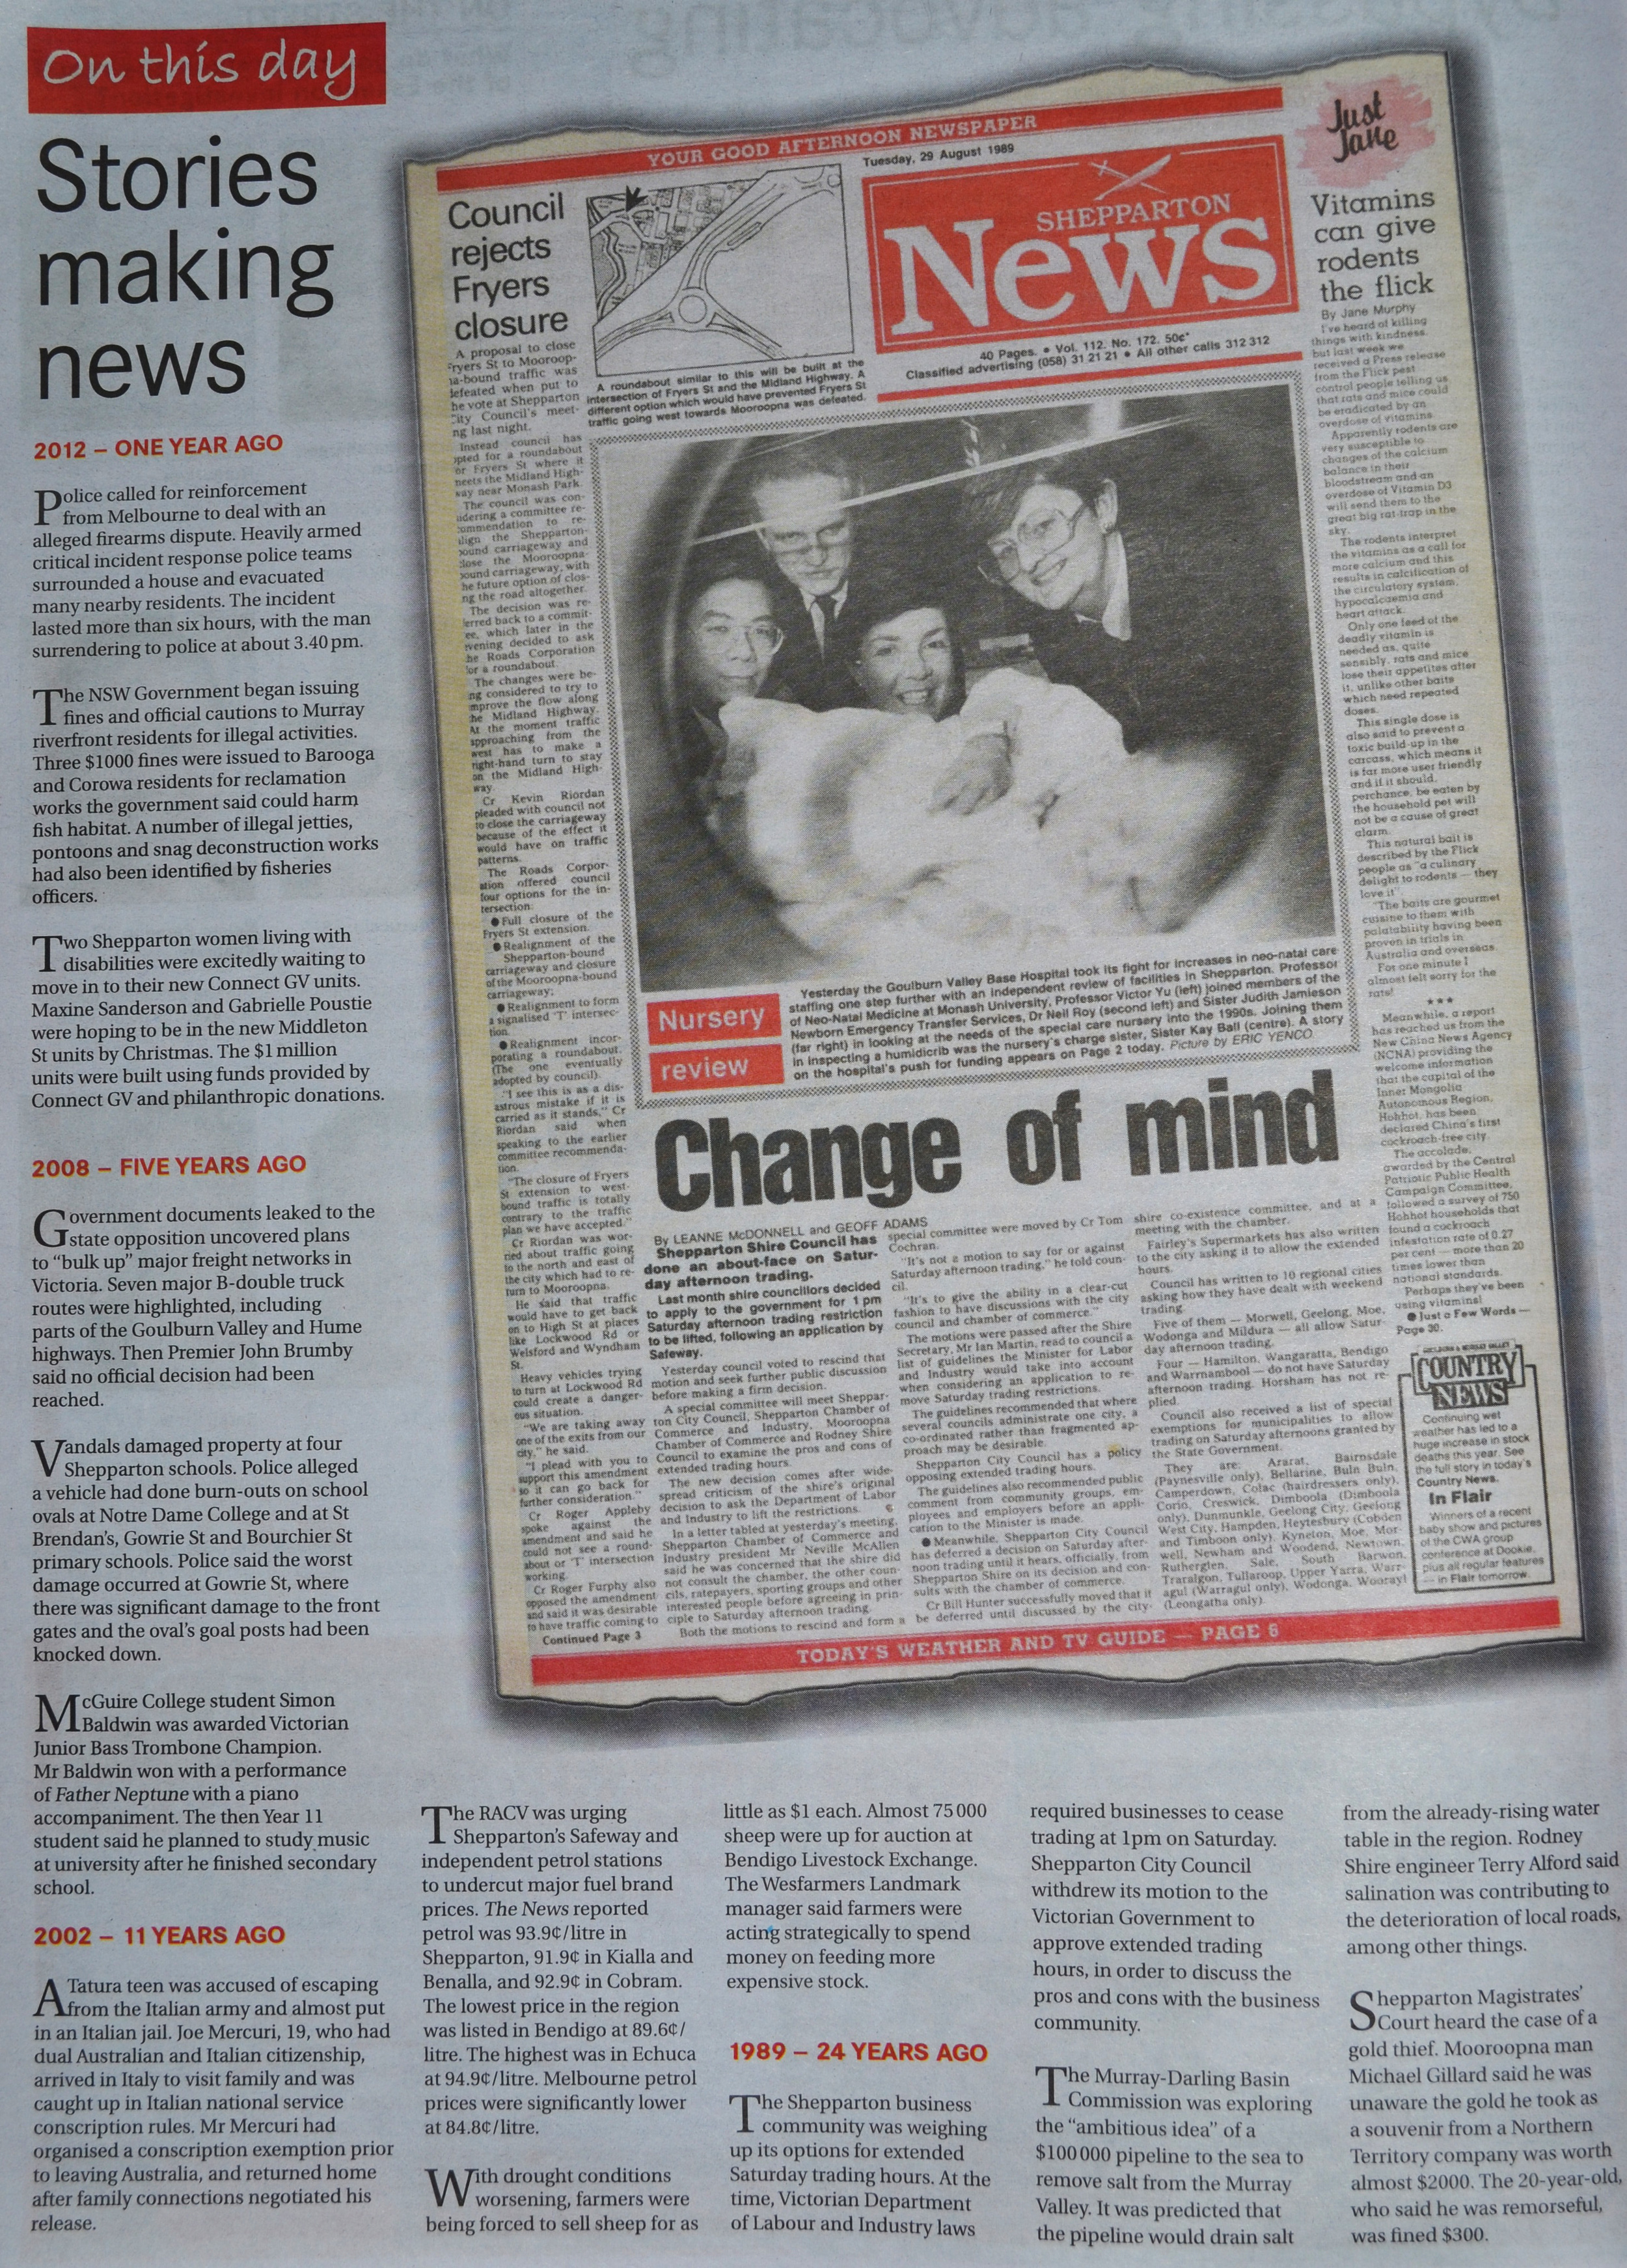 Published on 29 August, 2013.